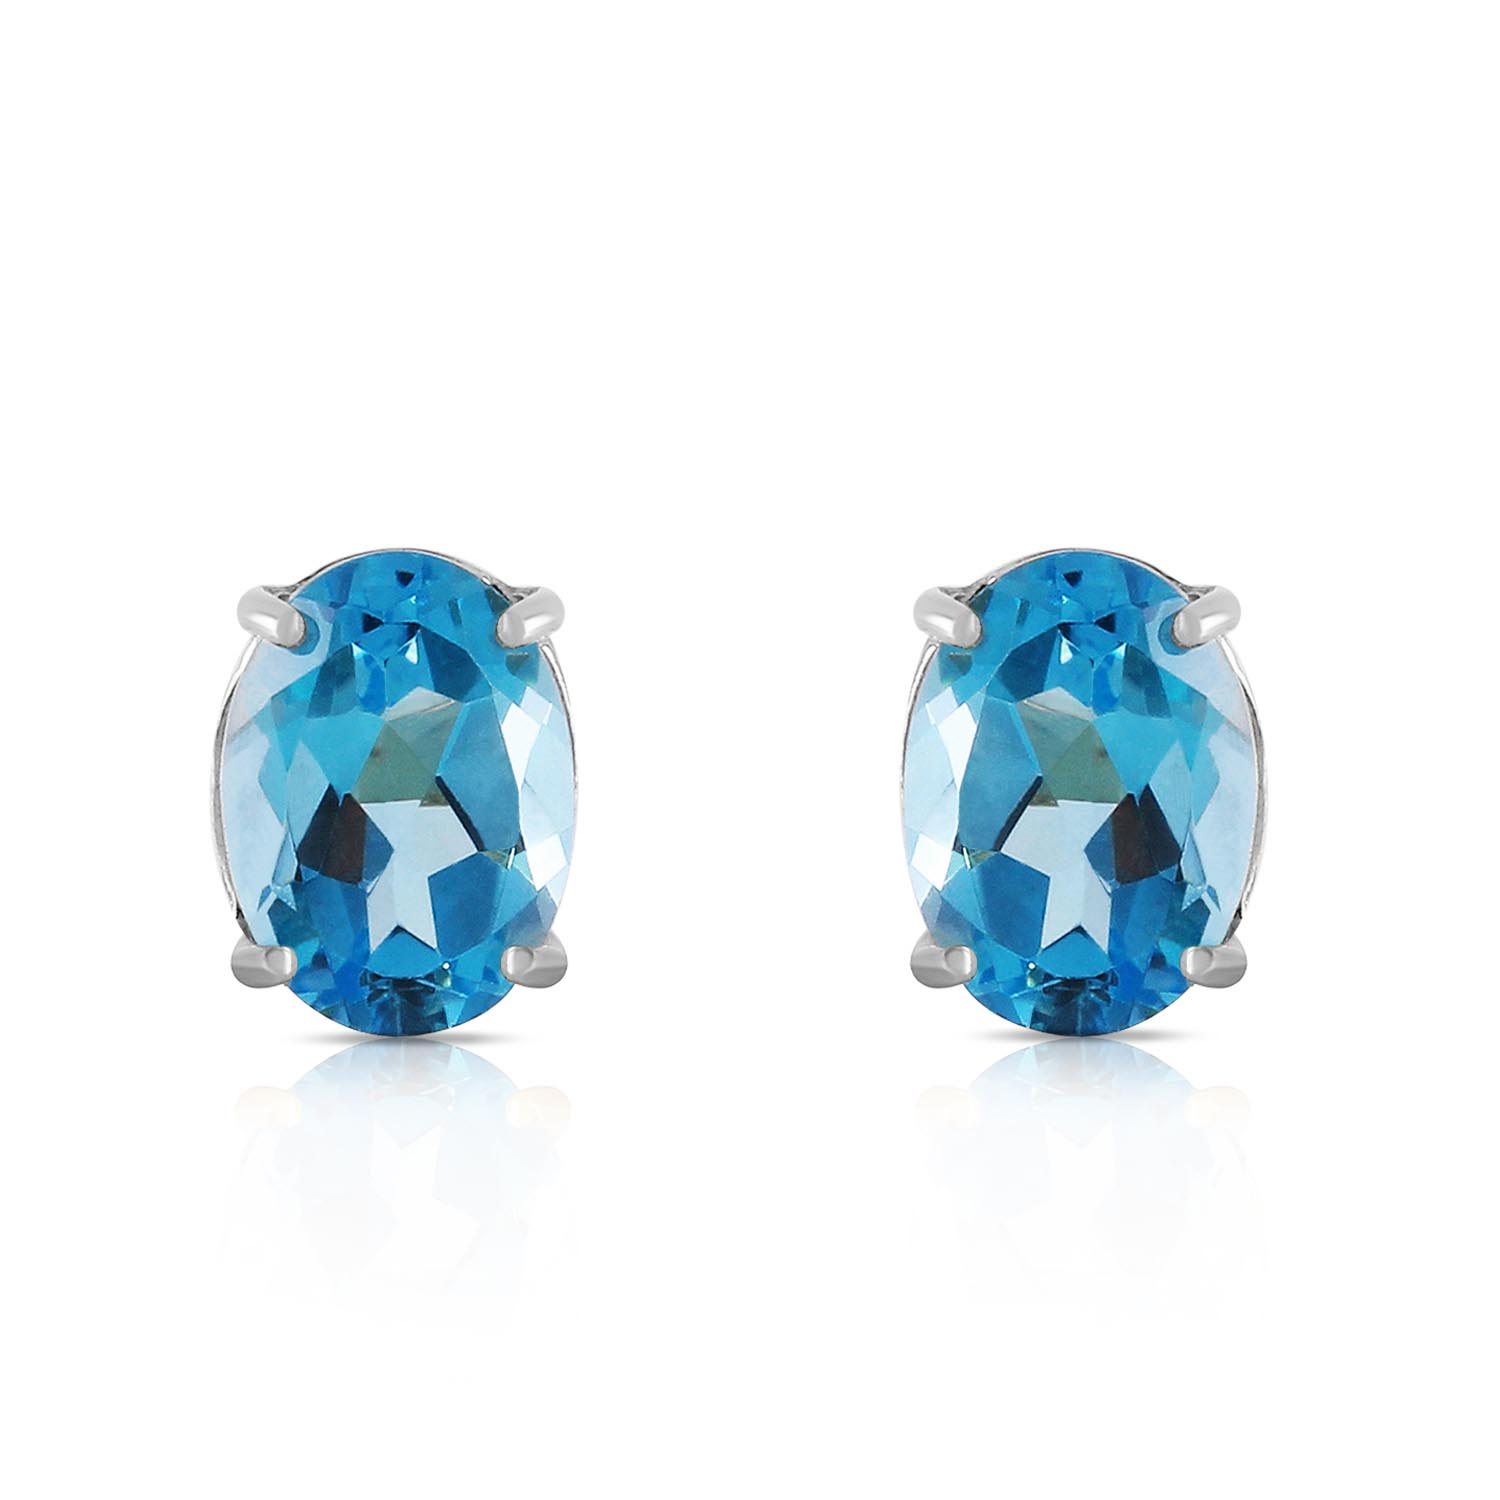 Blue Topaz Stud Earrings 1.8ctw in 14K White Gold